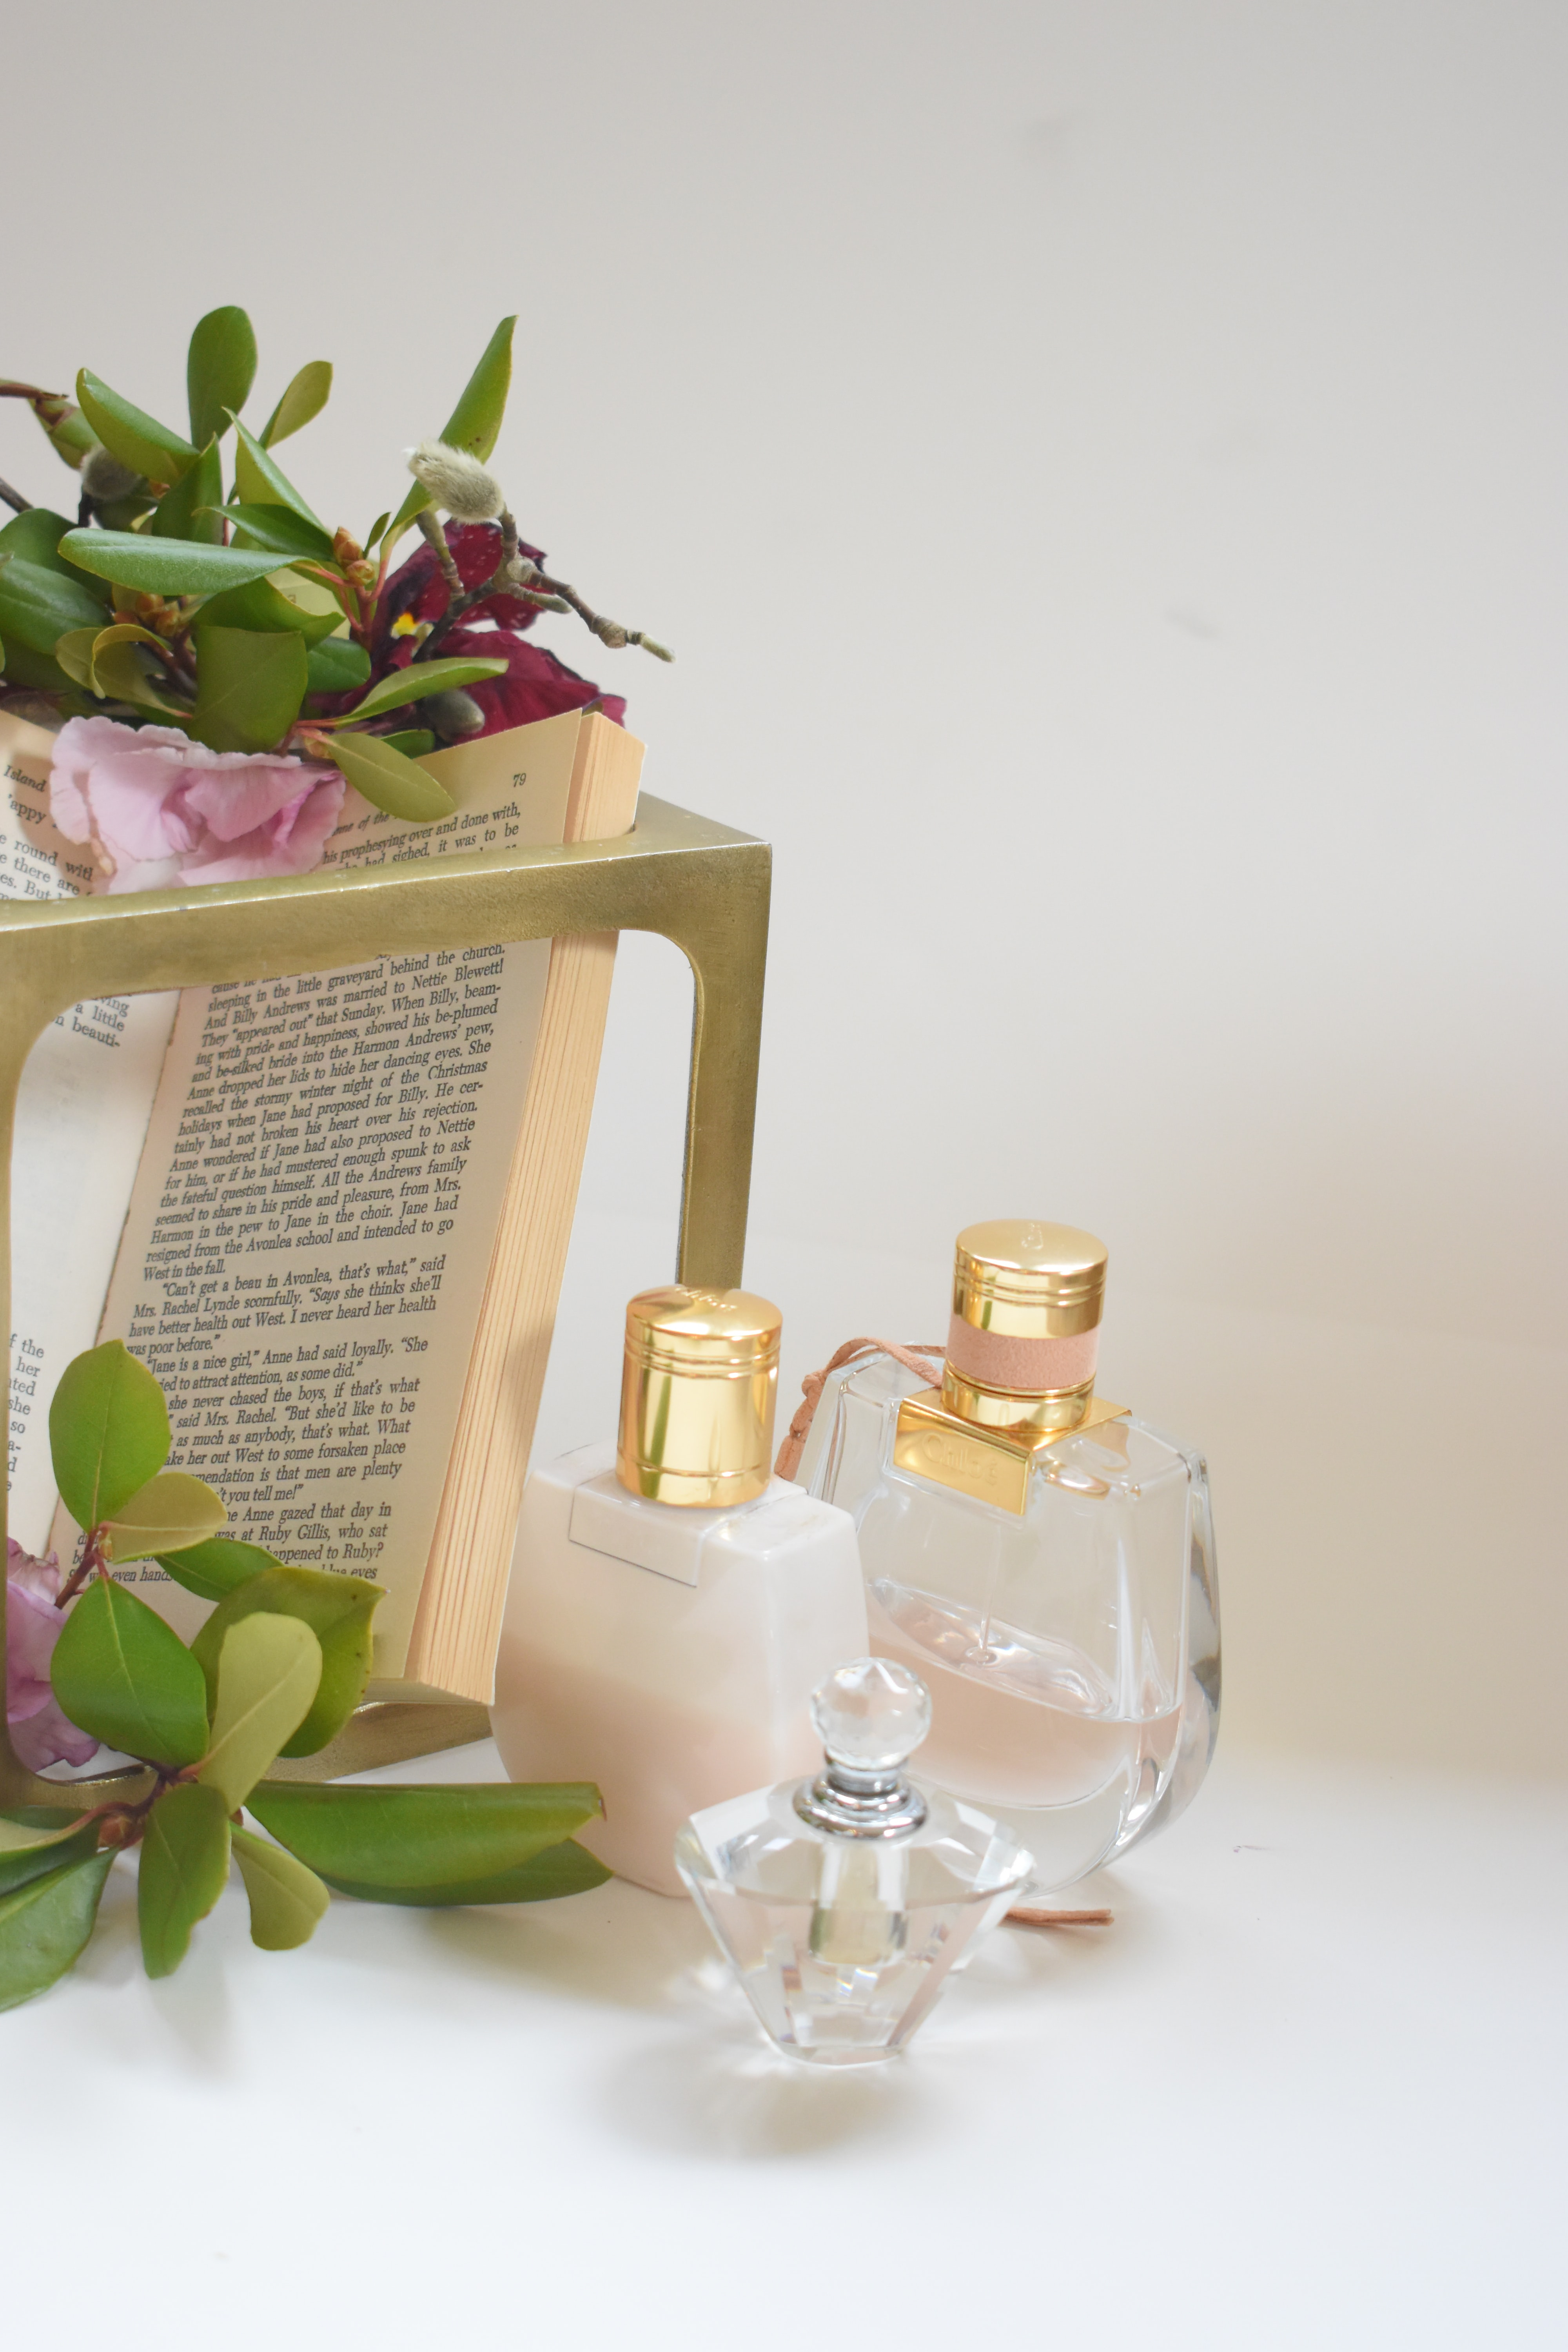 100 Perfume Pictures Download Free Images On Unsplash